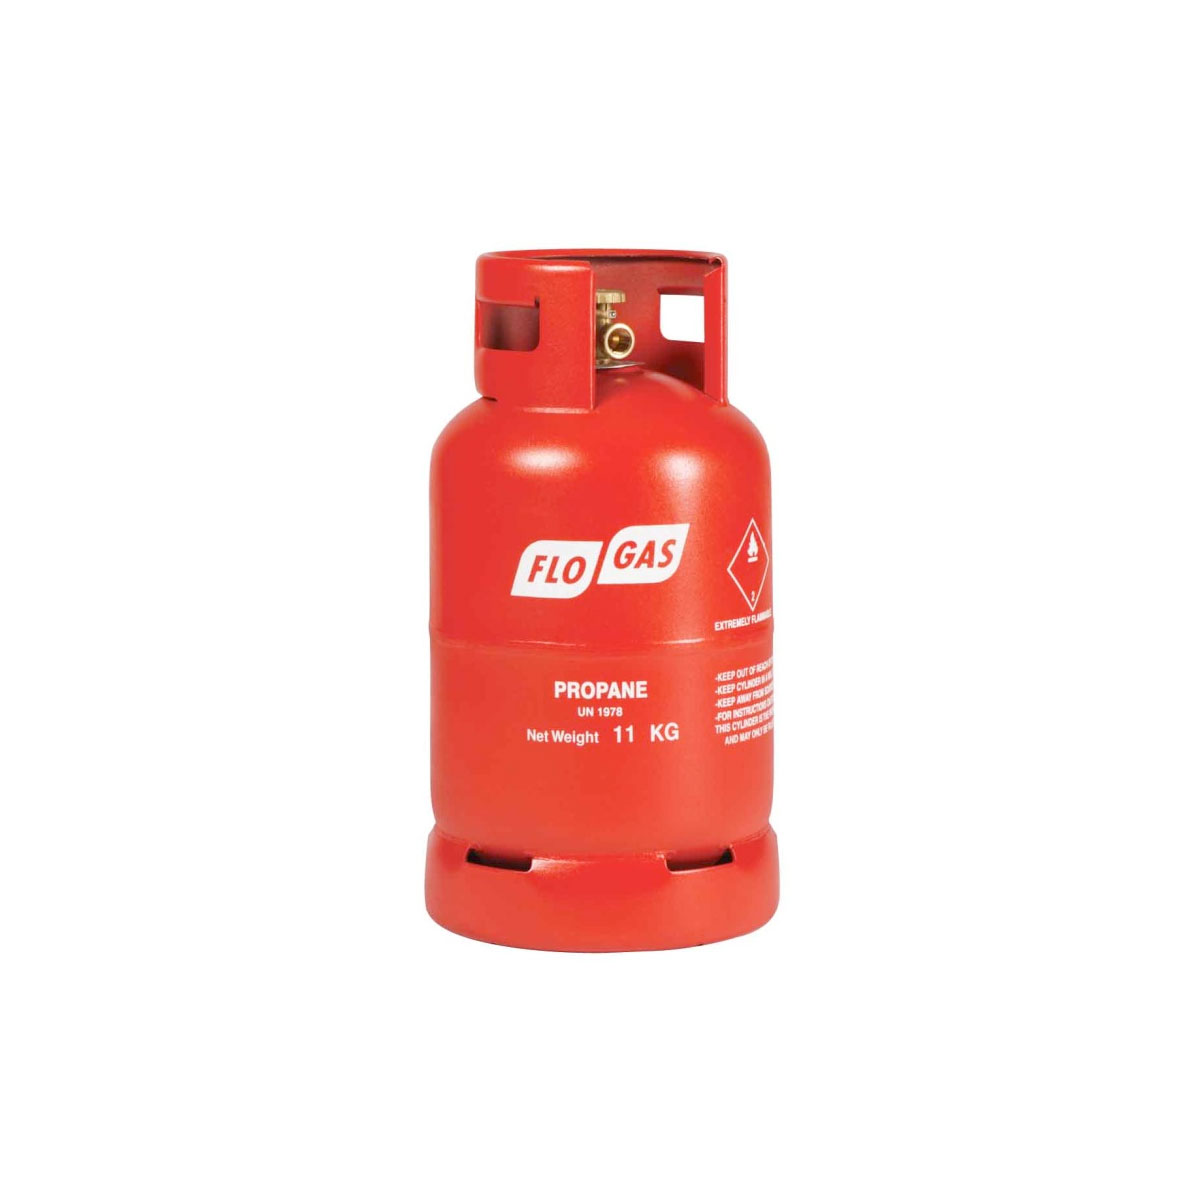 Buy 11kg bottle of propane gas - buy online from GSS Gas at www.gssgas.co.uk